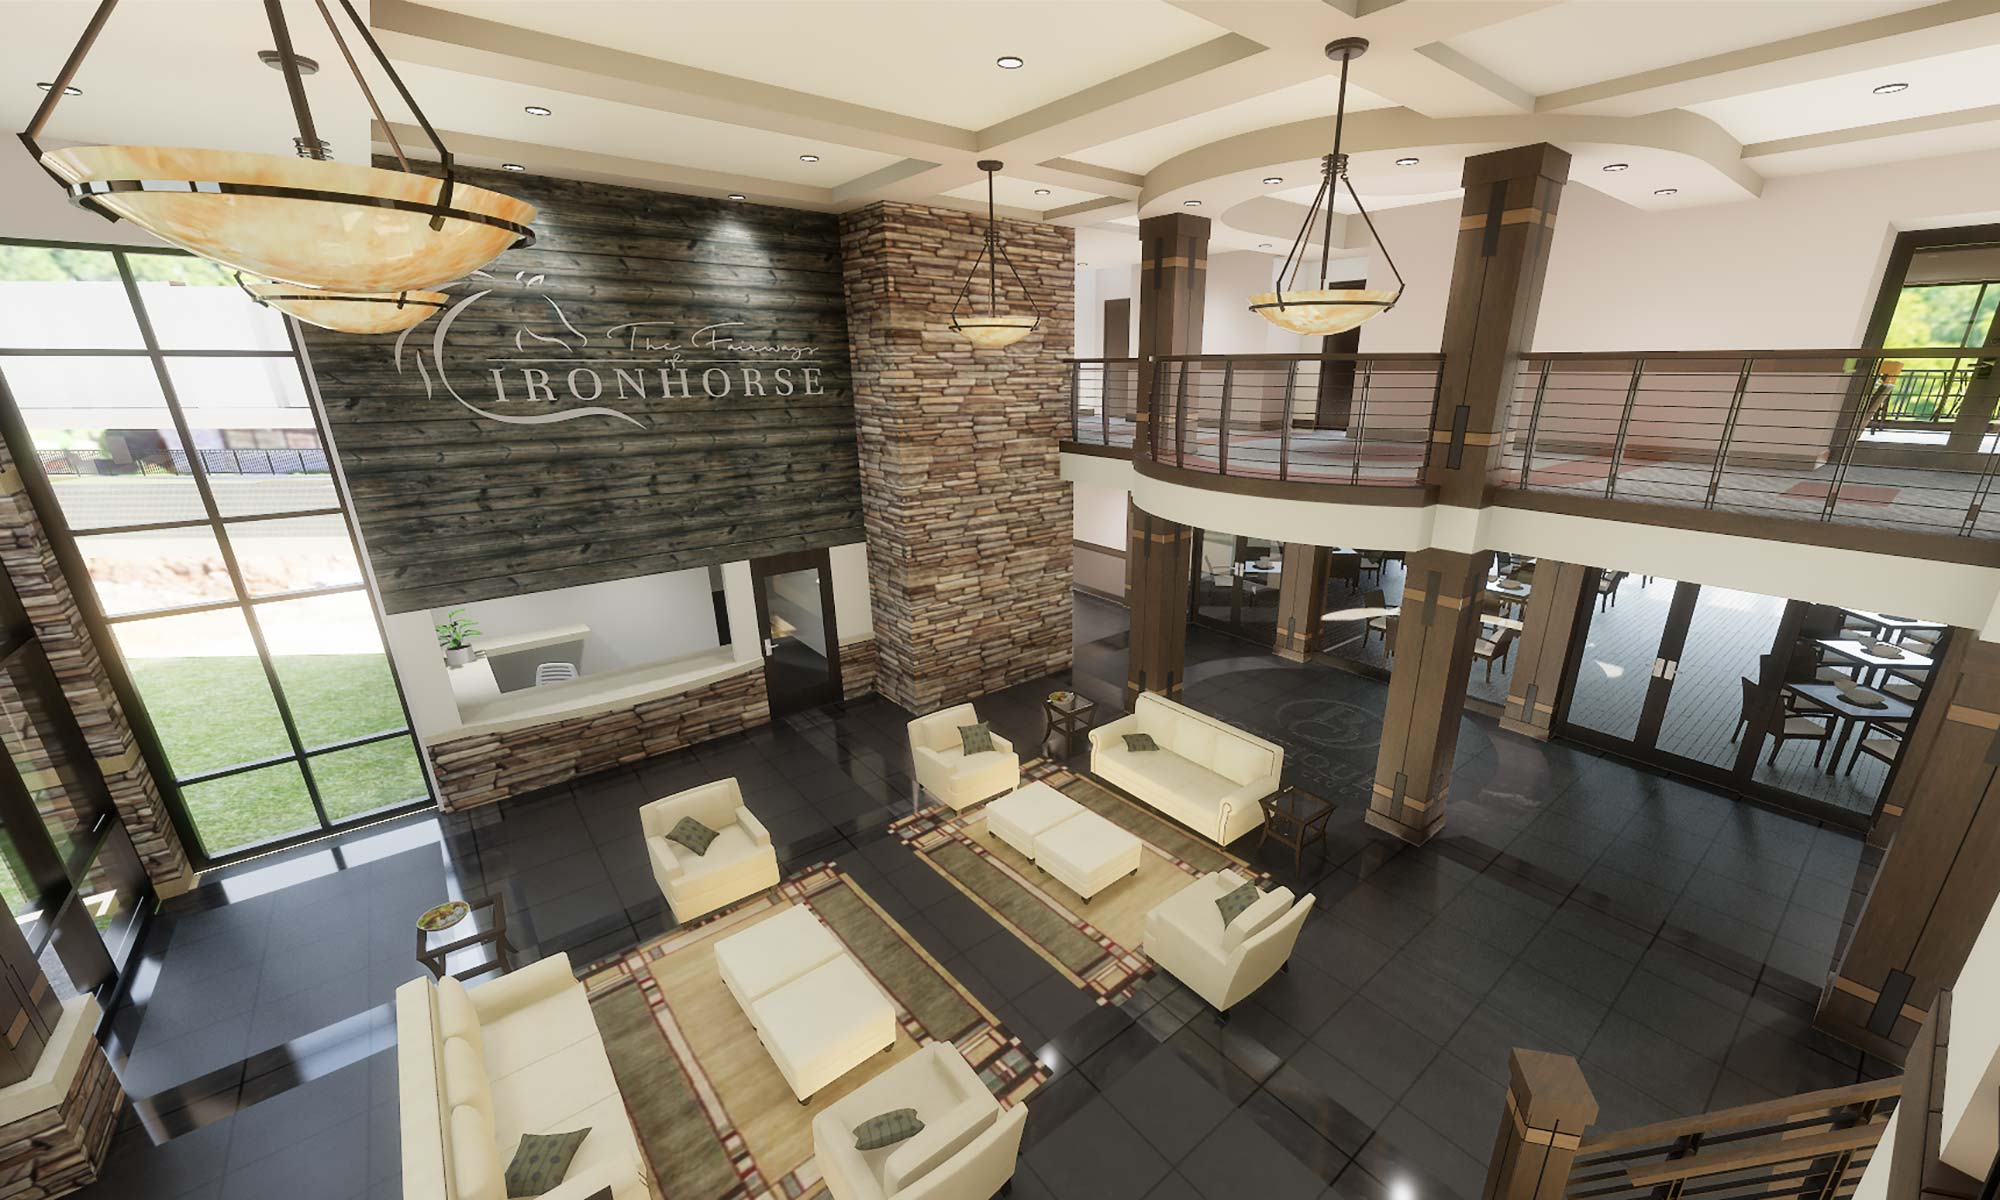 View of our lobby from the mezzanine at The Fairways of Ironhorse in Leawood